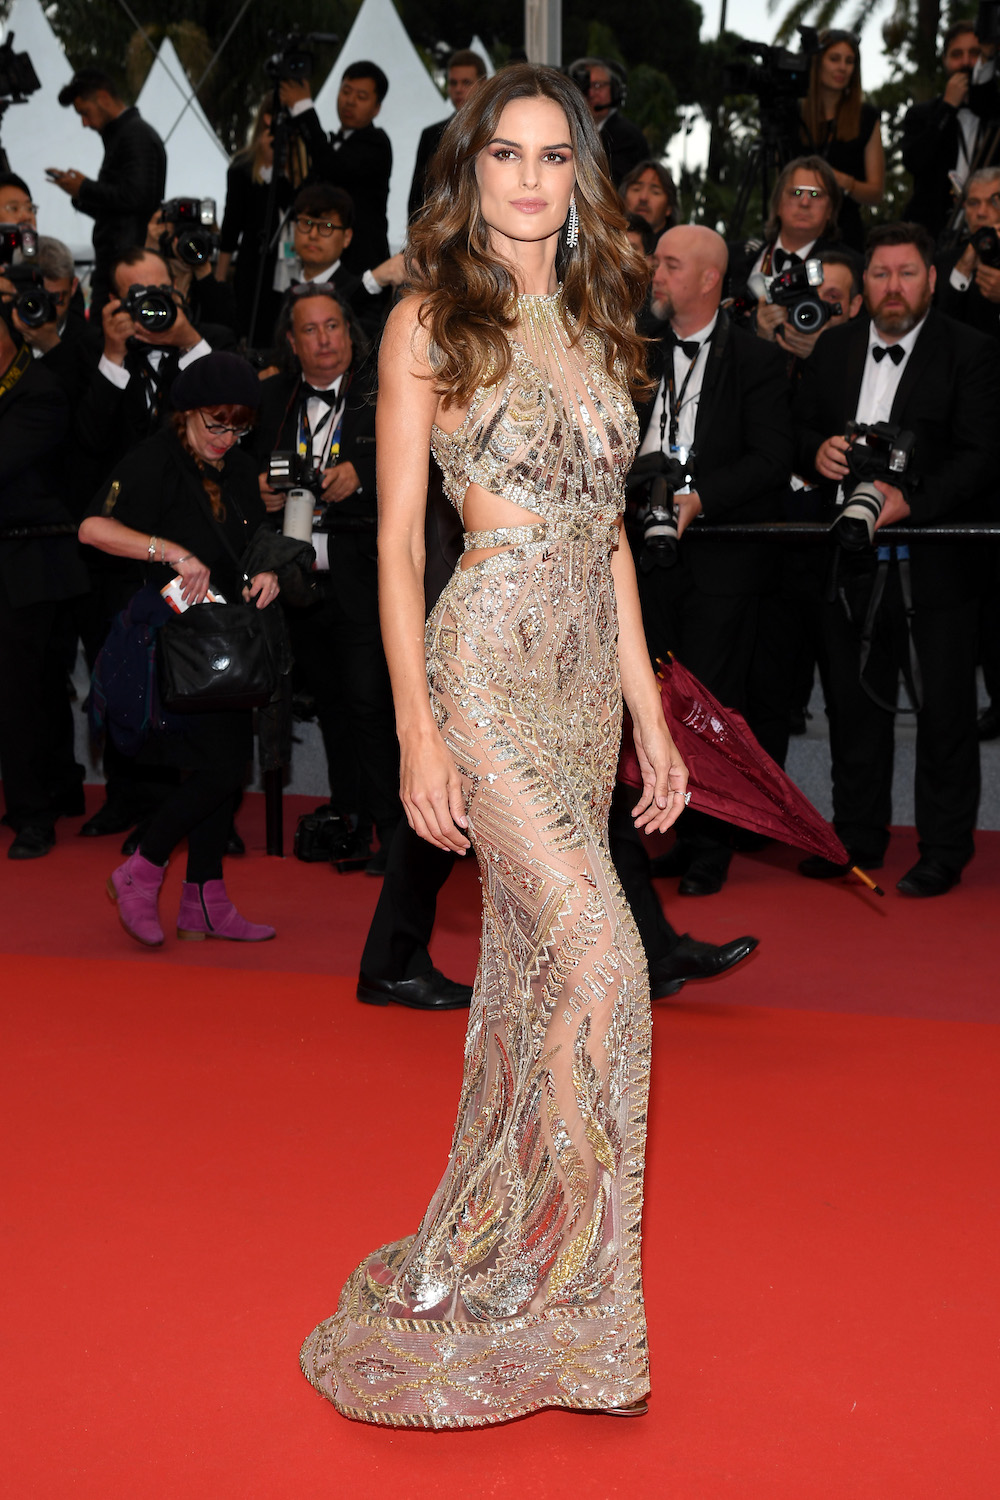 The Looks We Loved the Most at Cannes Had One Thing in Common